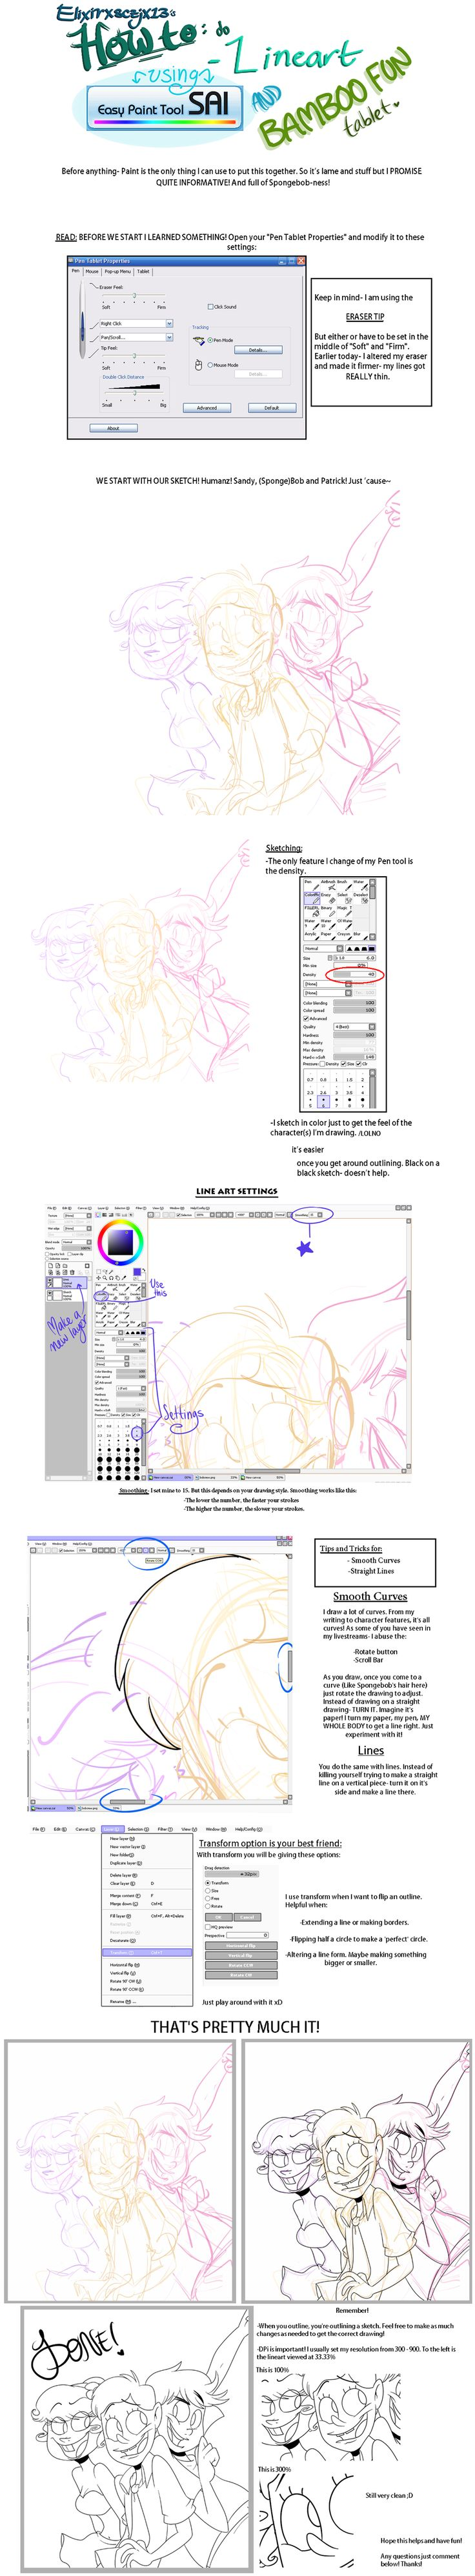 One Line Art Tutorial : Best images about sai brushes on pinterest flat brush